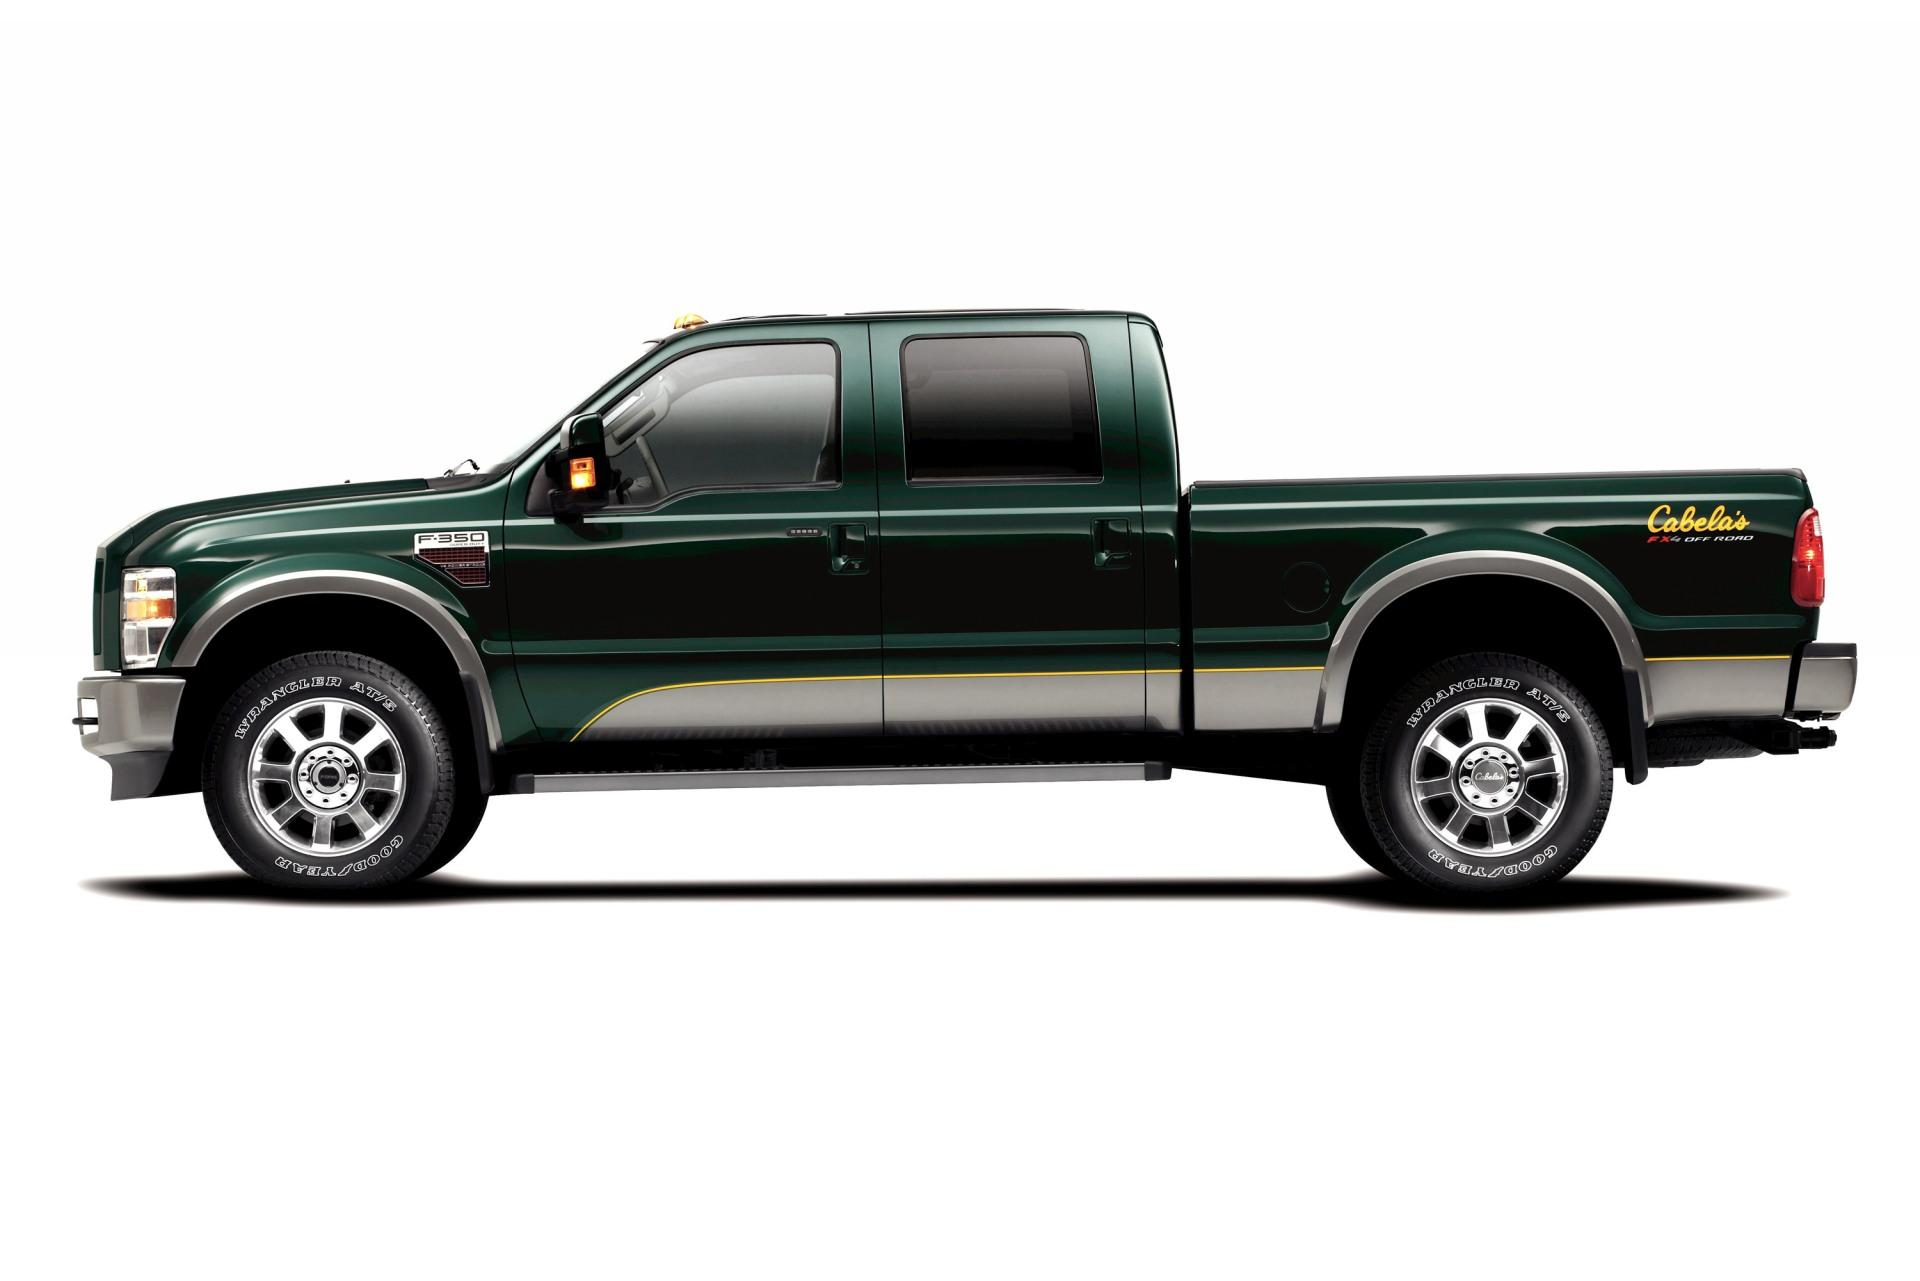 Image Result For Ford F King Ranch Fx Price